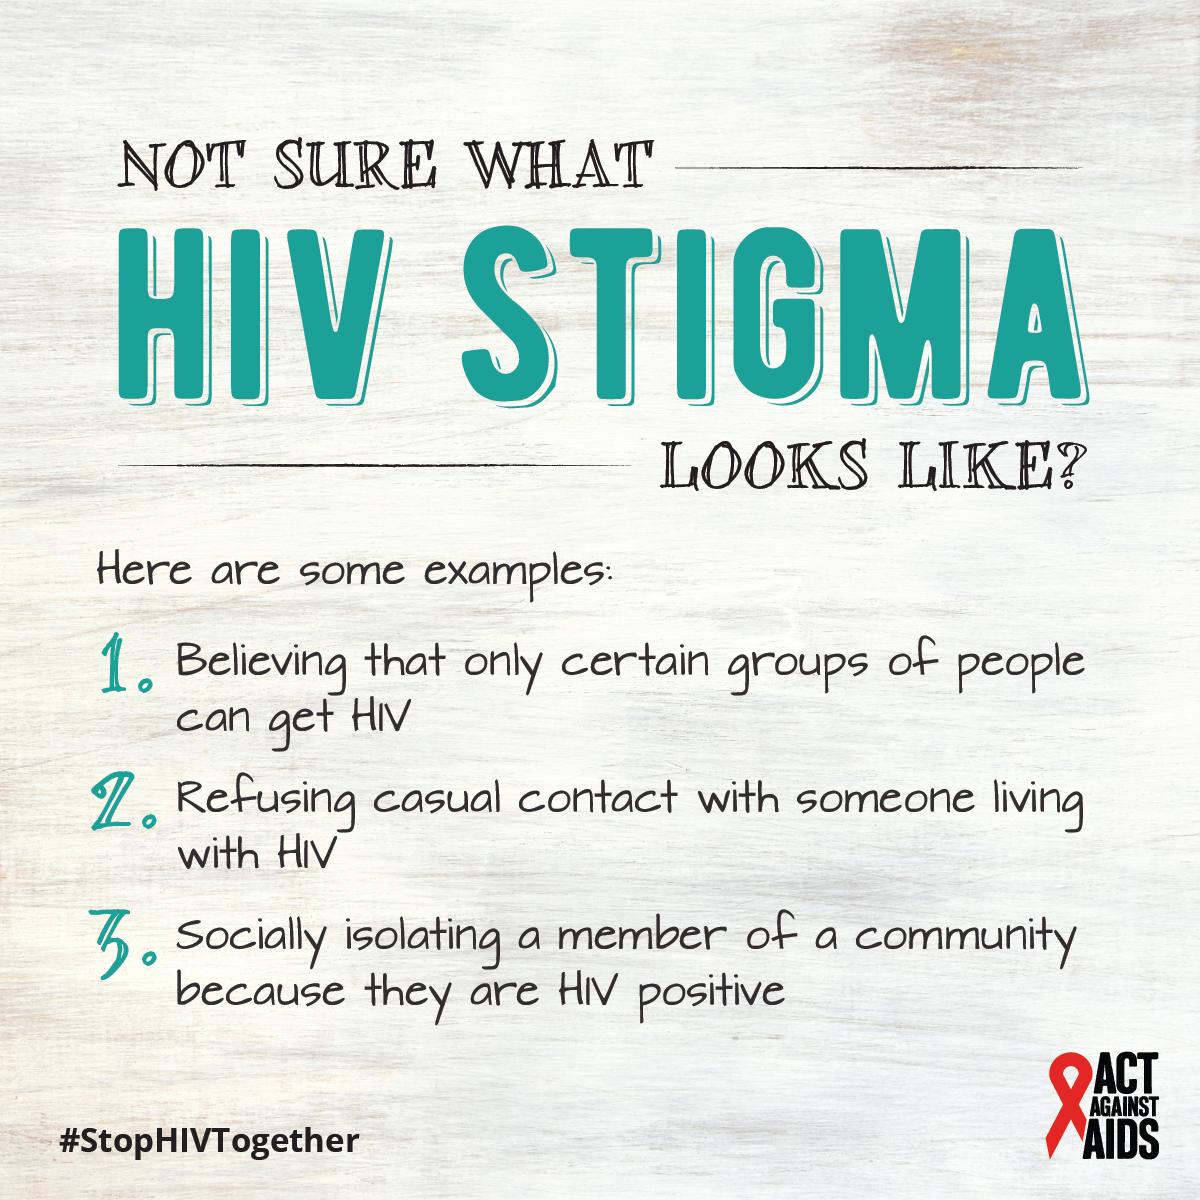 Not sure what HIV stigma looks like? Here are some examples: 1. Believing that only certain groups of people can get HIV 2. Refusing casual contact with someone living with HIV 3. Socially isolating a member of a community because they are HIV positive. #StopHIVTogether Act Against AIDS